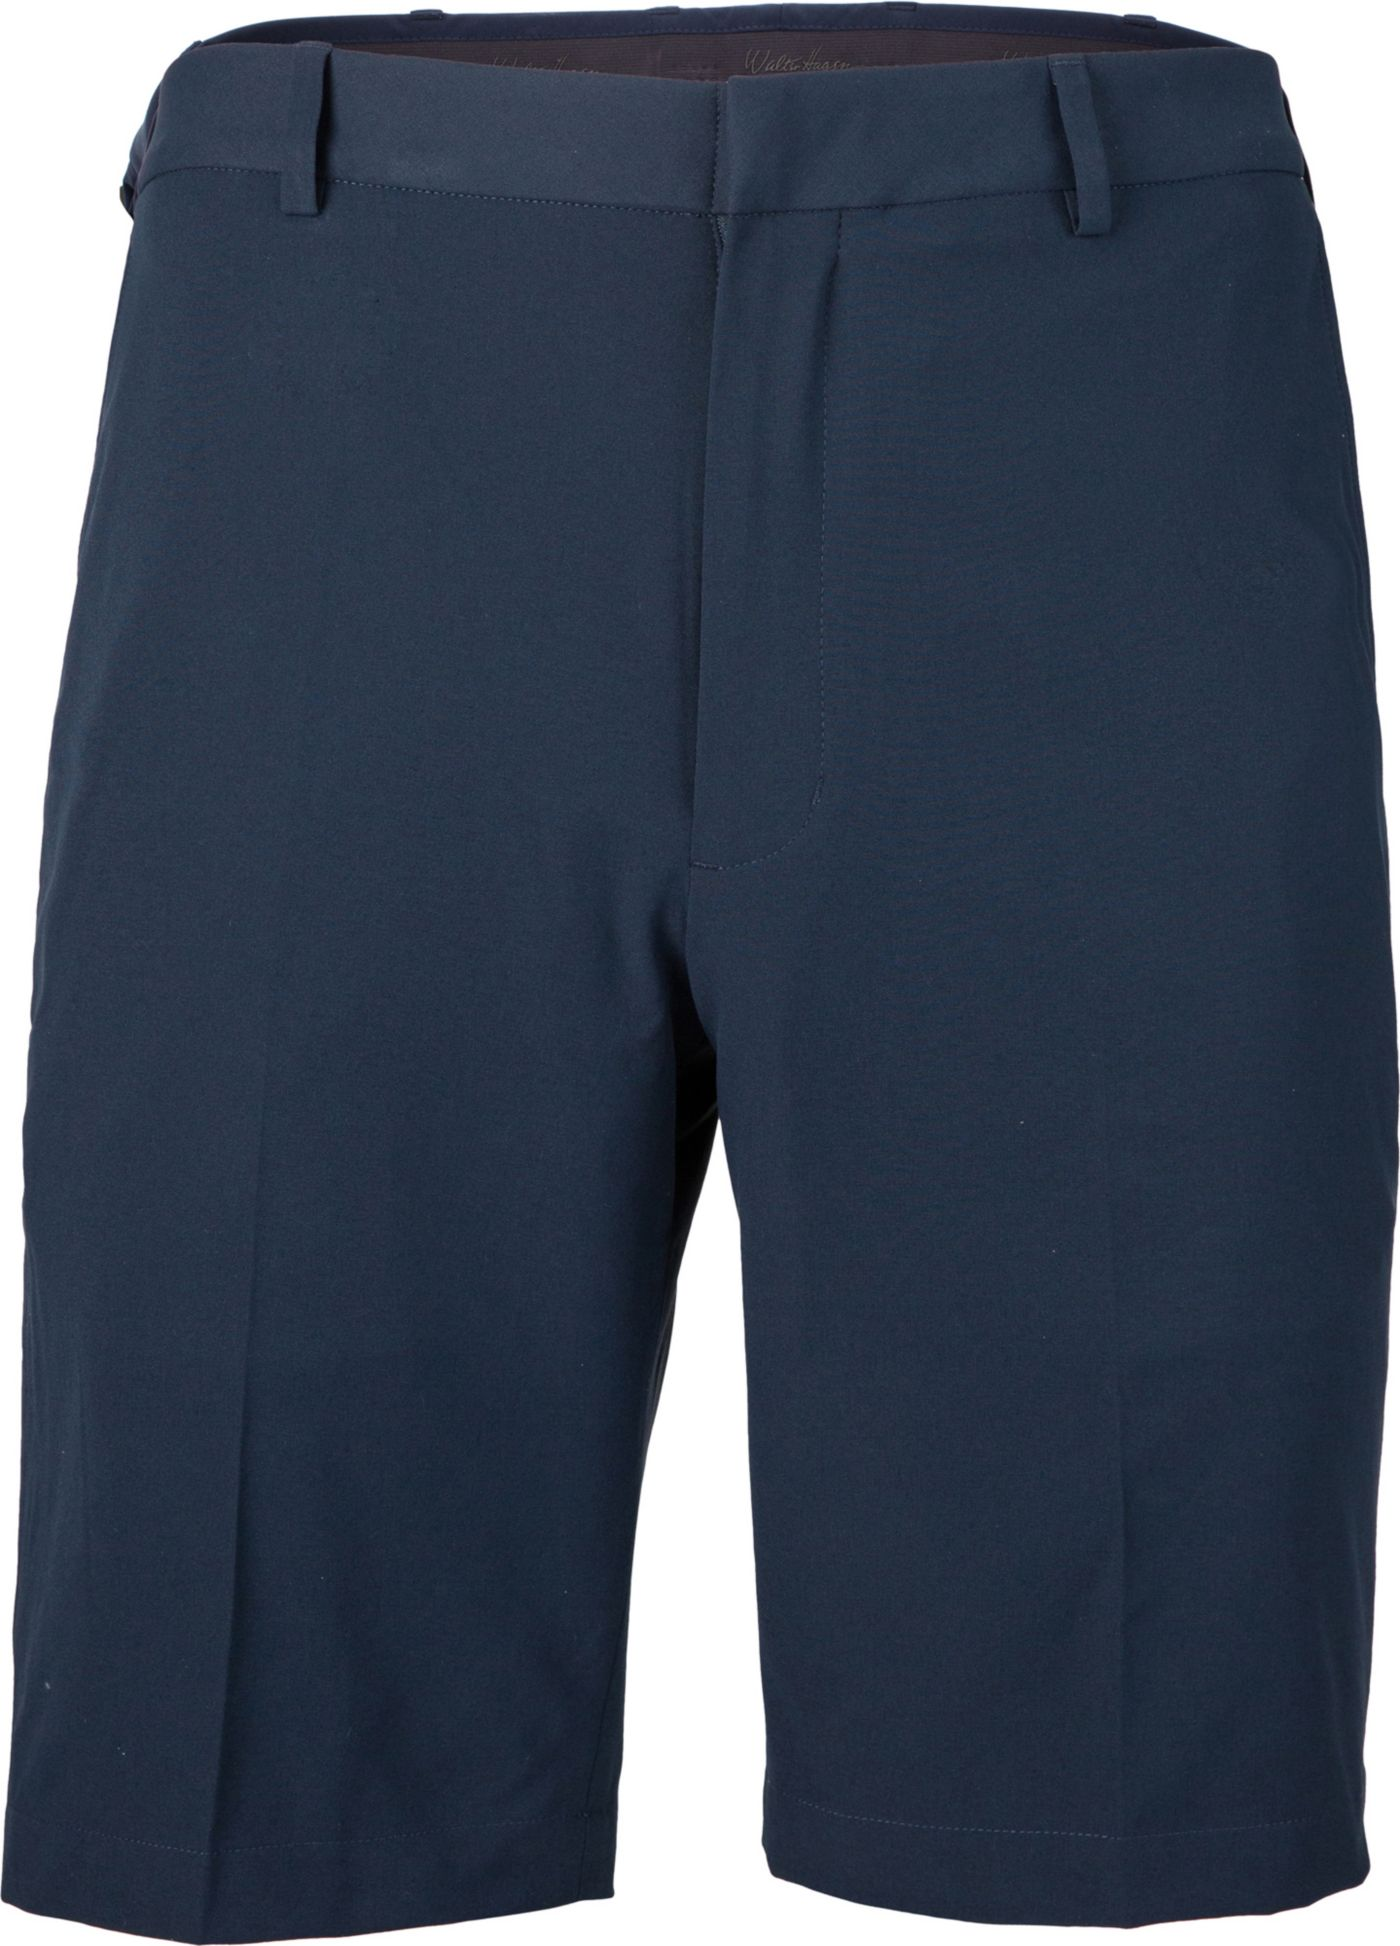 Walter Hagen 11 Majors Shorts – Big & Tall